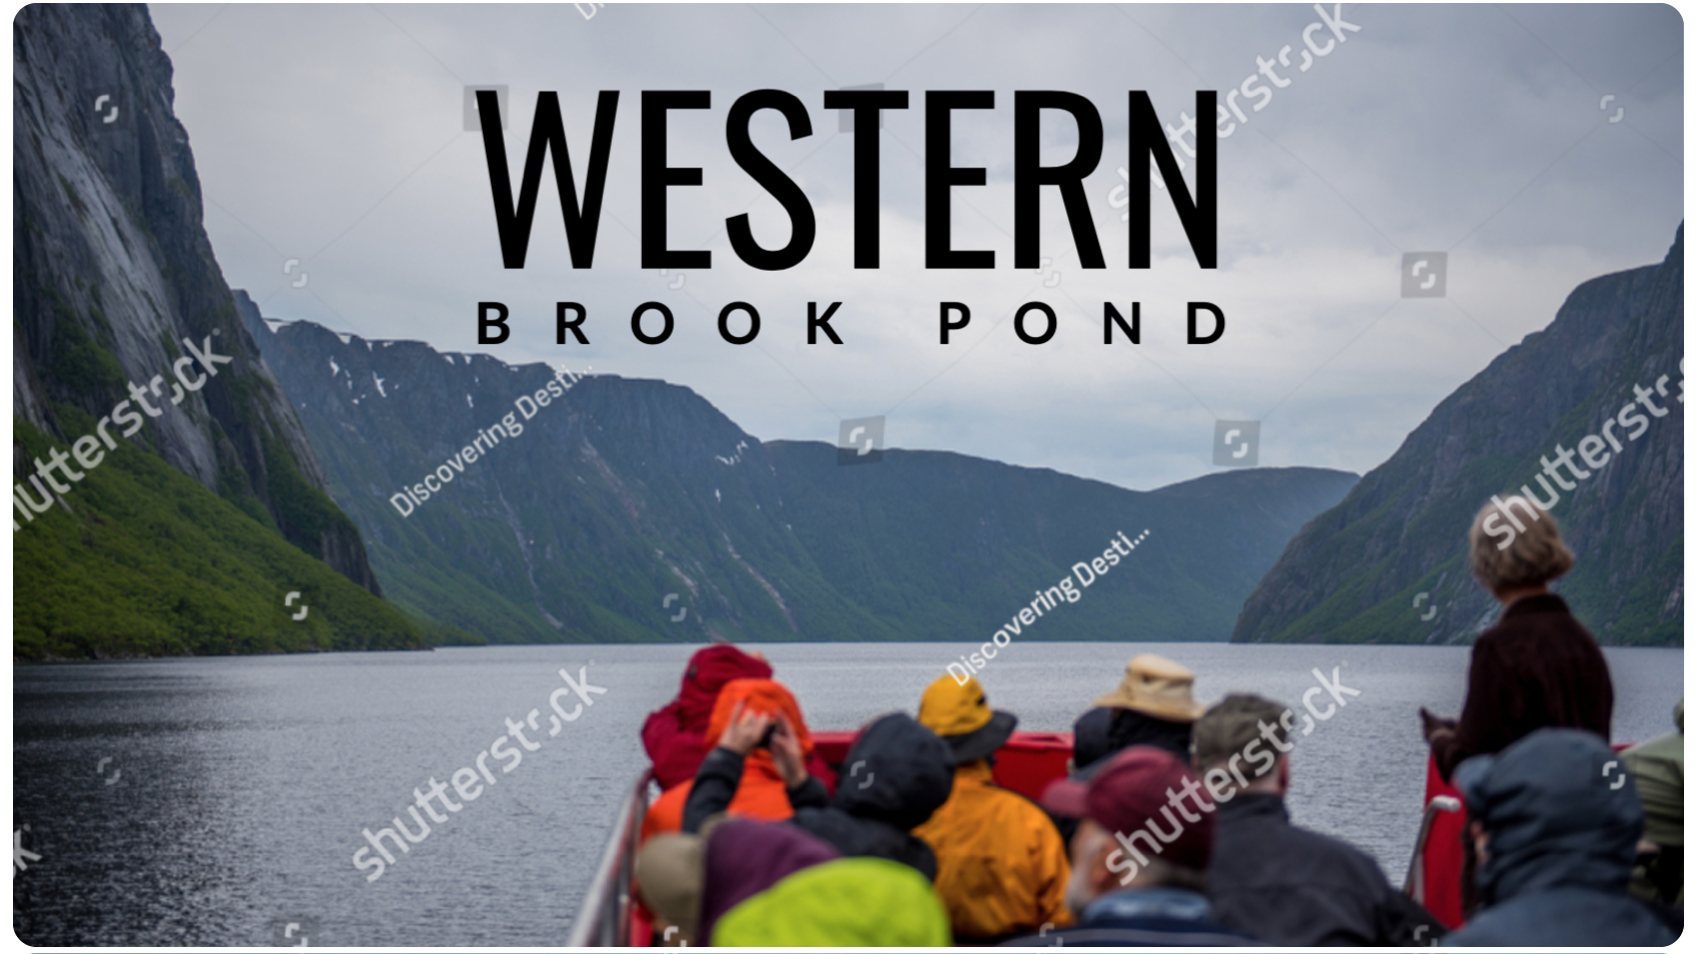 Shutterstock for project